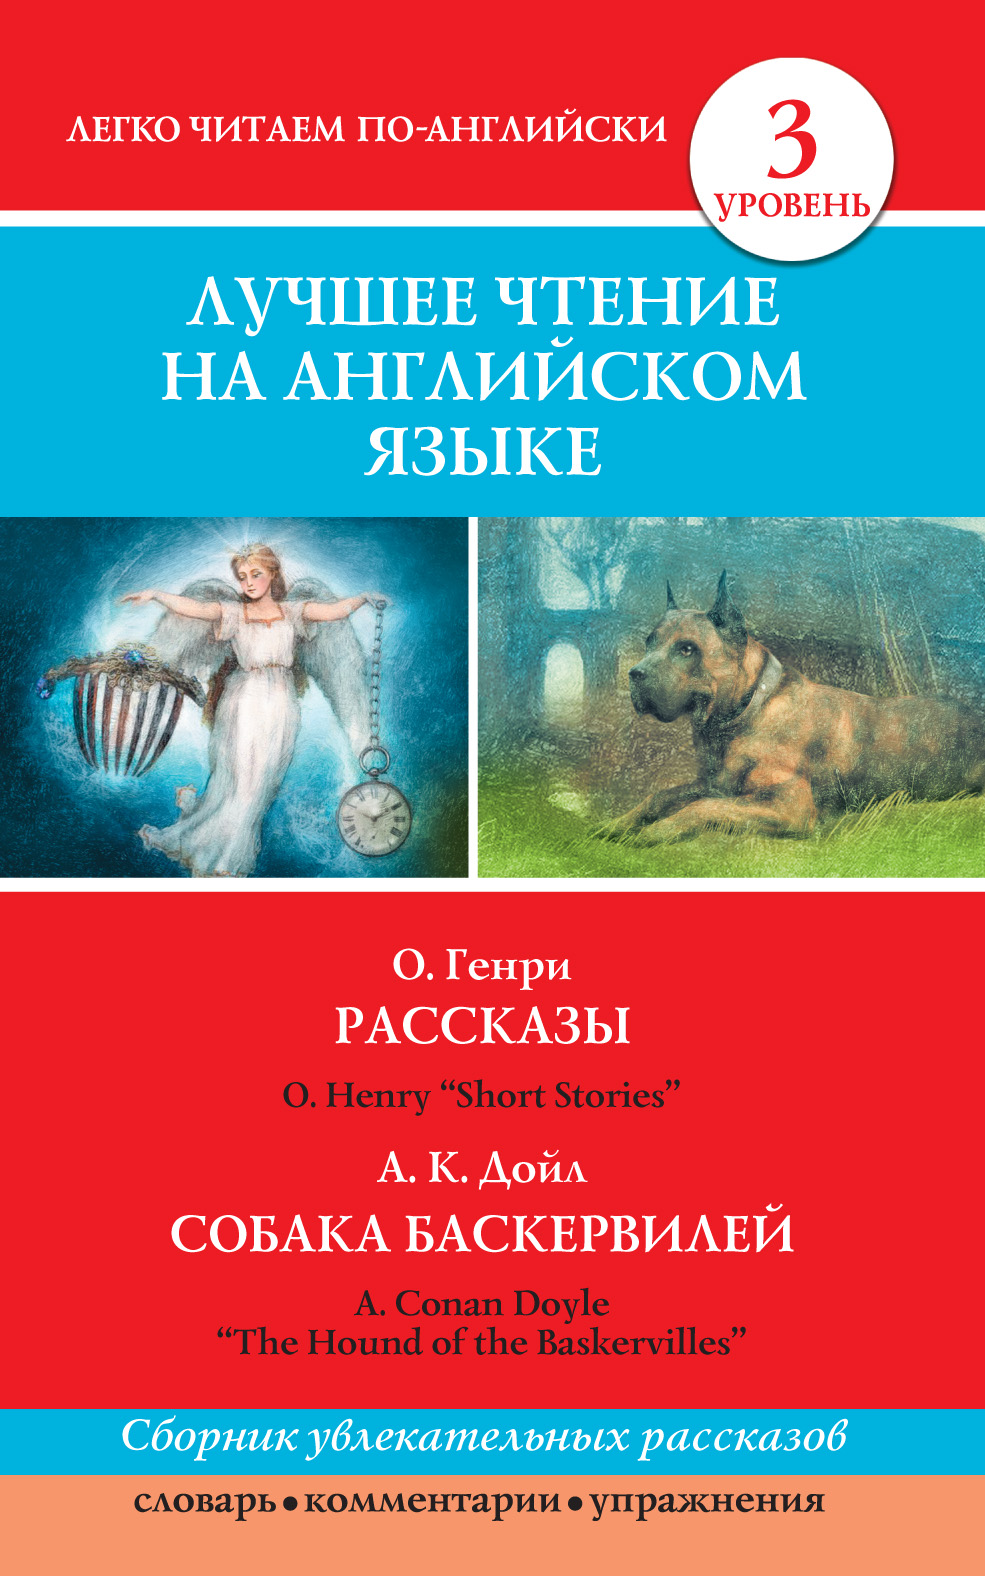 О. Генри Рассказы / Short Stories. Собака Баскервилей / The Hound of the Baskervilles о генри the day we celebrate stories